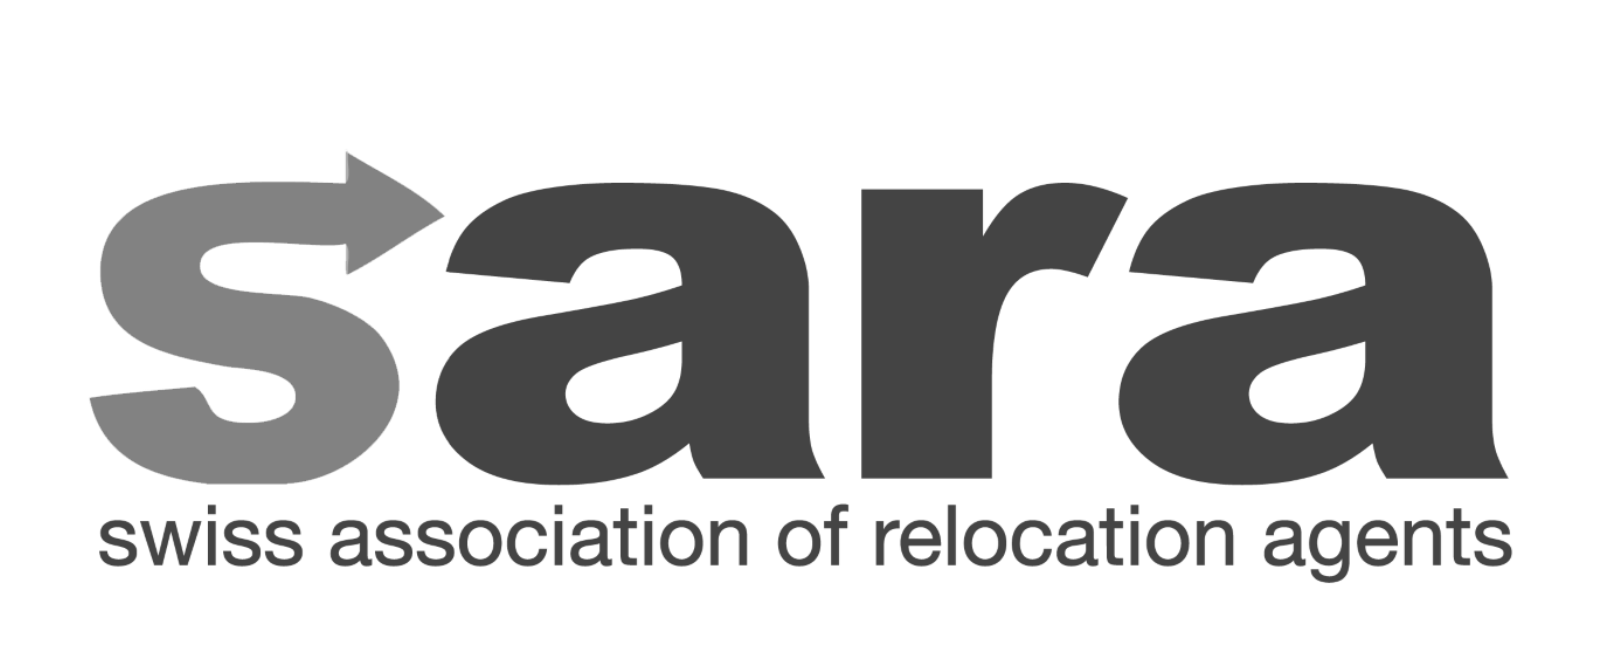 swiss_association_of_relocation_agents_gray.png